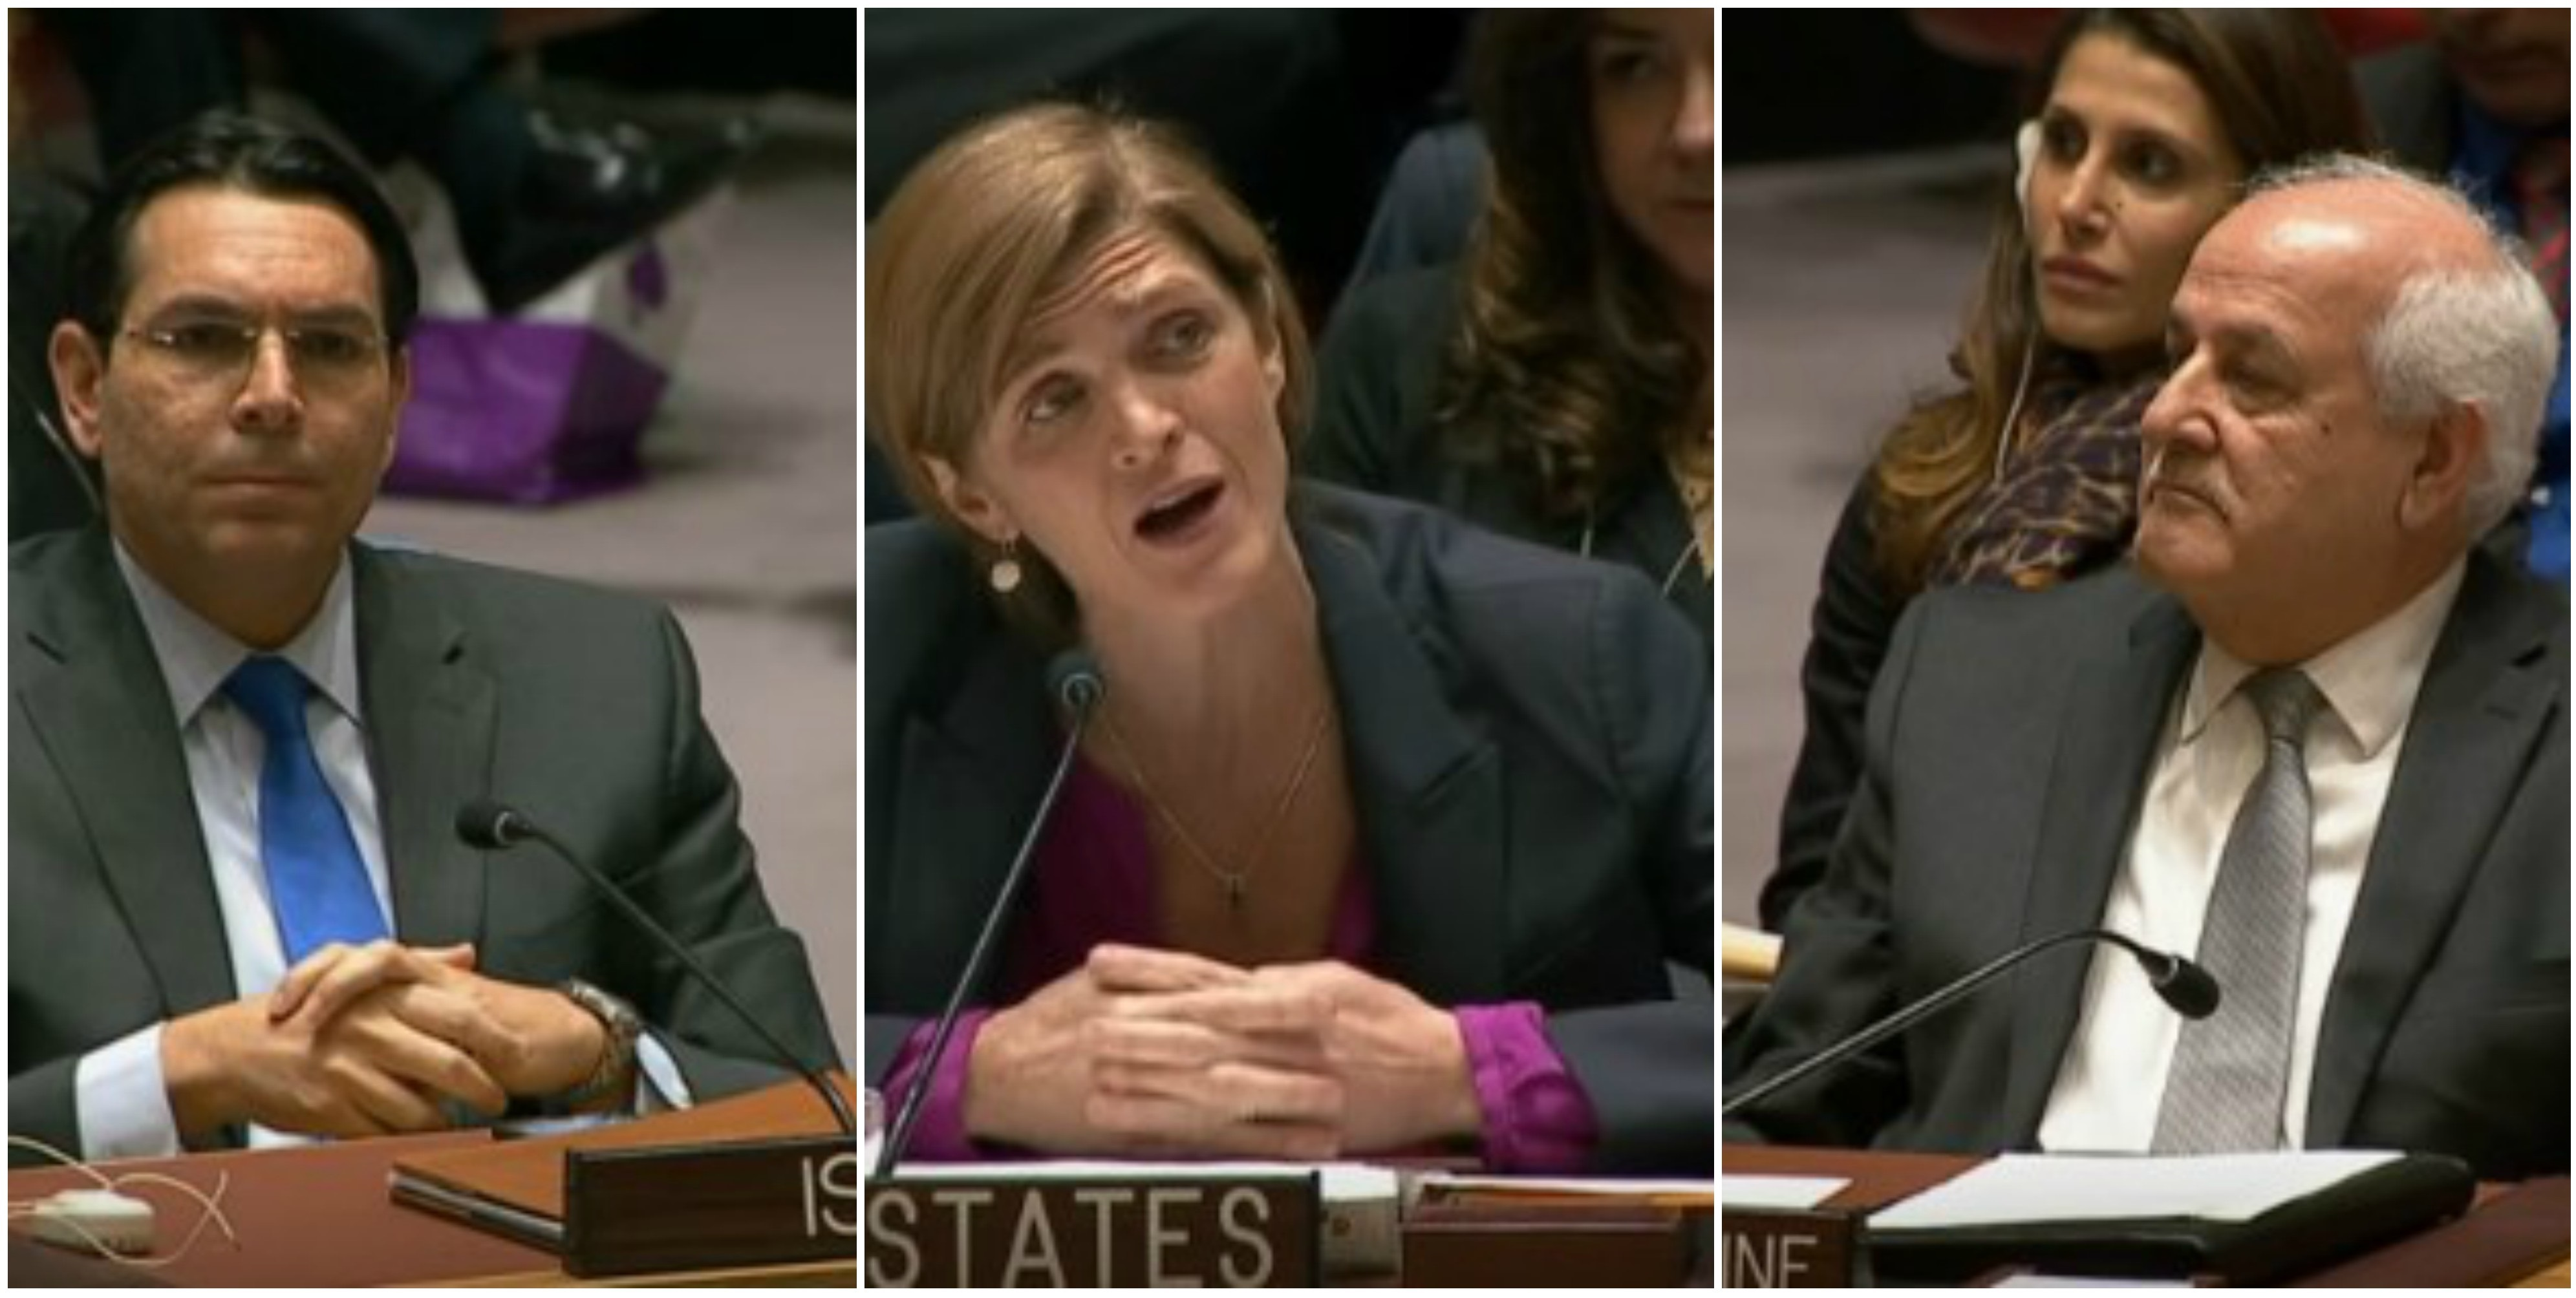 America Shifts Stance, Allows New UN Bill Putting Israel in Violation of International Law